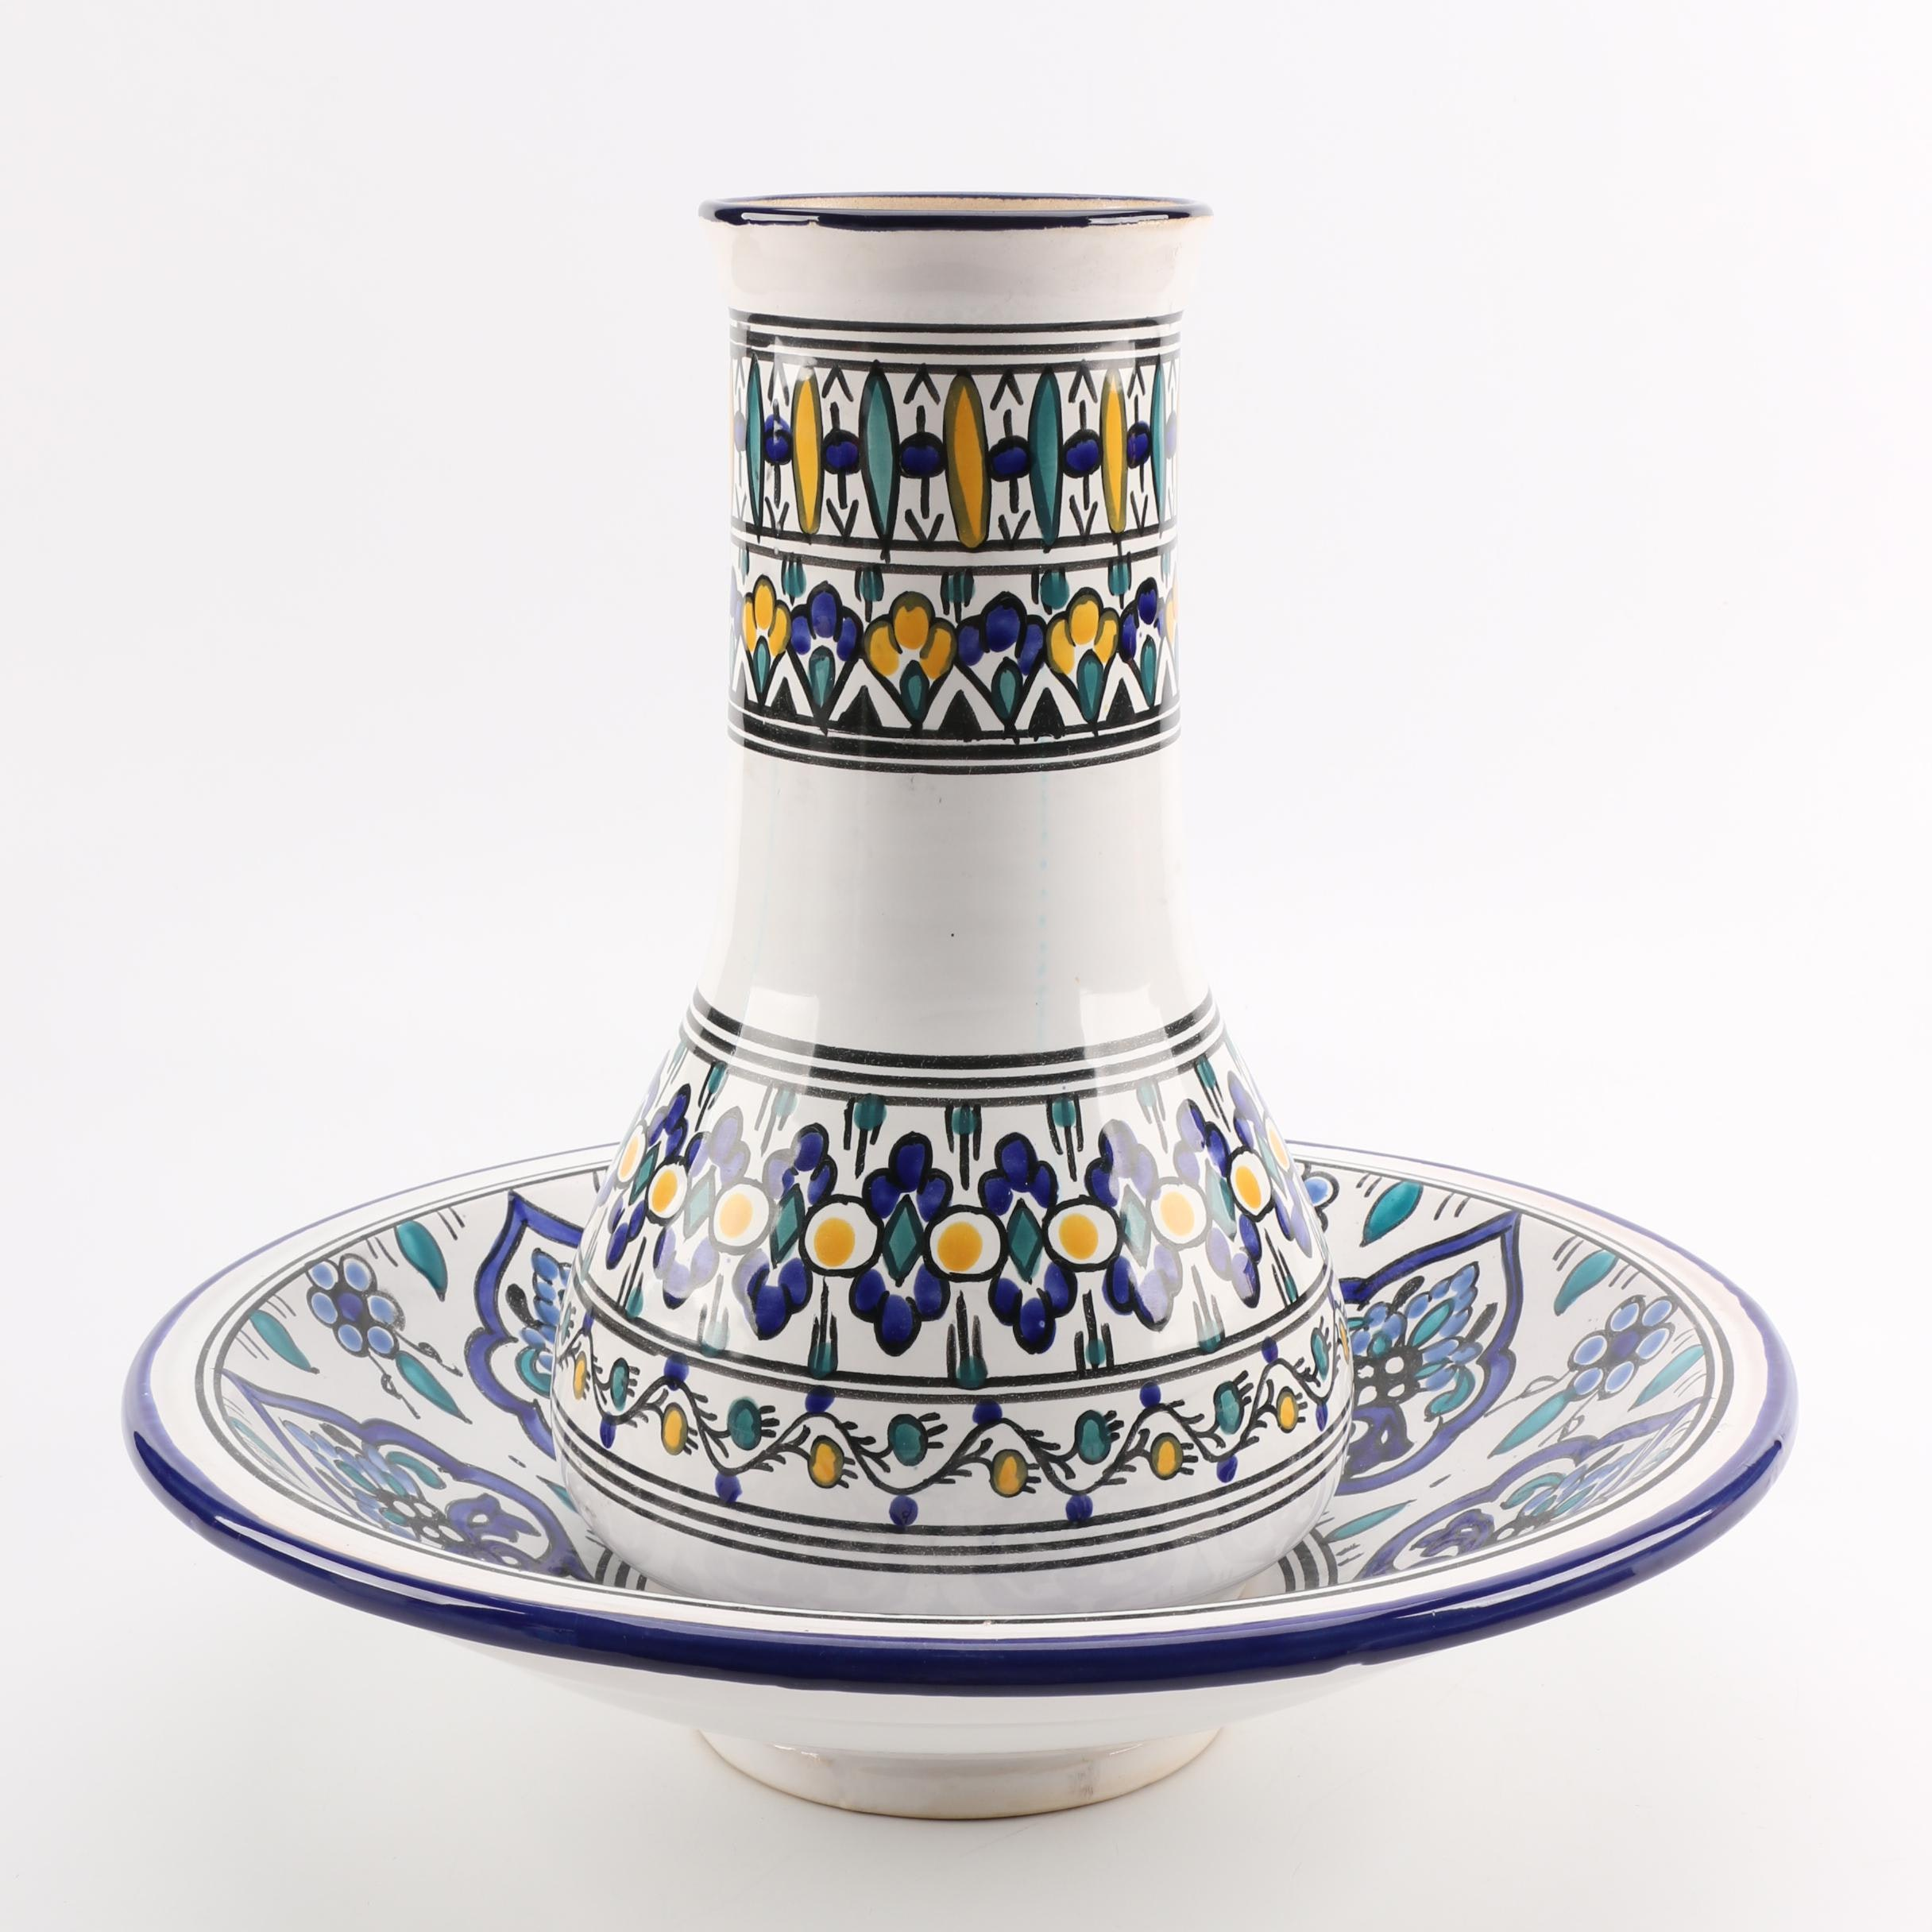 Tunisian Hand-Painted Ceramic Vase and Bowl